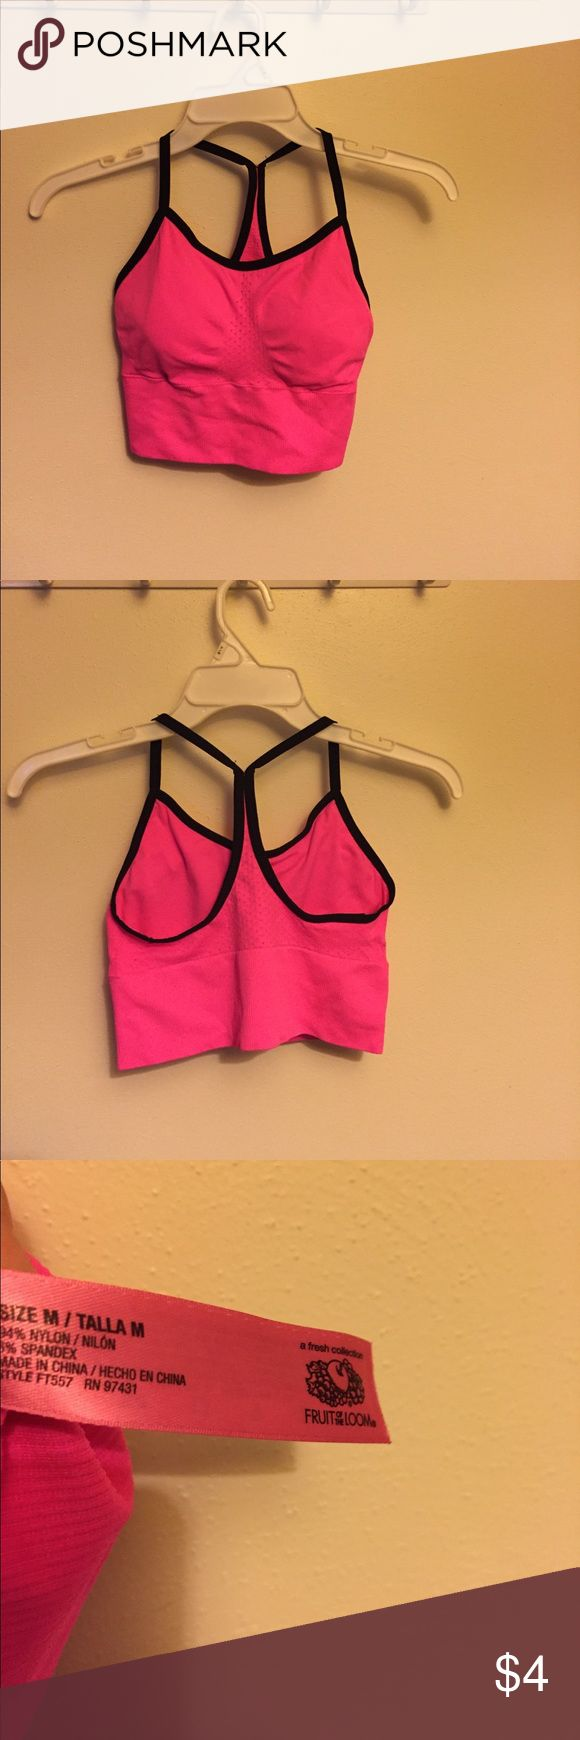 Fruit of the Loom Sports Bra - medium Fruit of the Loom Sports Bra - medium 🌸GUC🌸 worn once. Was not the right size for my daughter. Fruit of the Loom Other